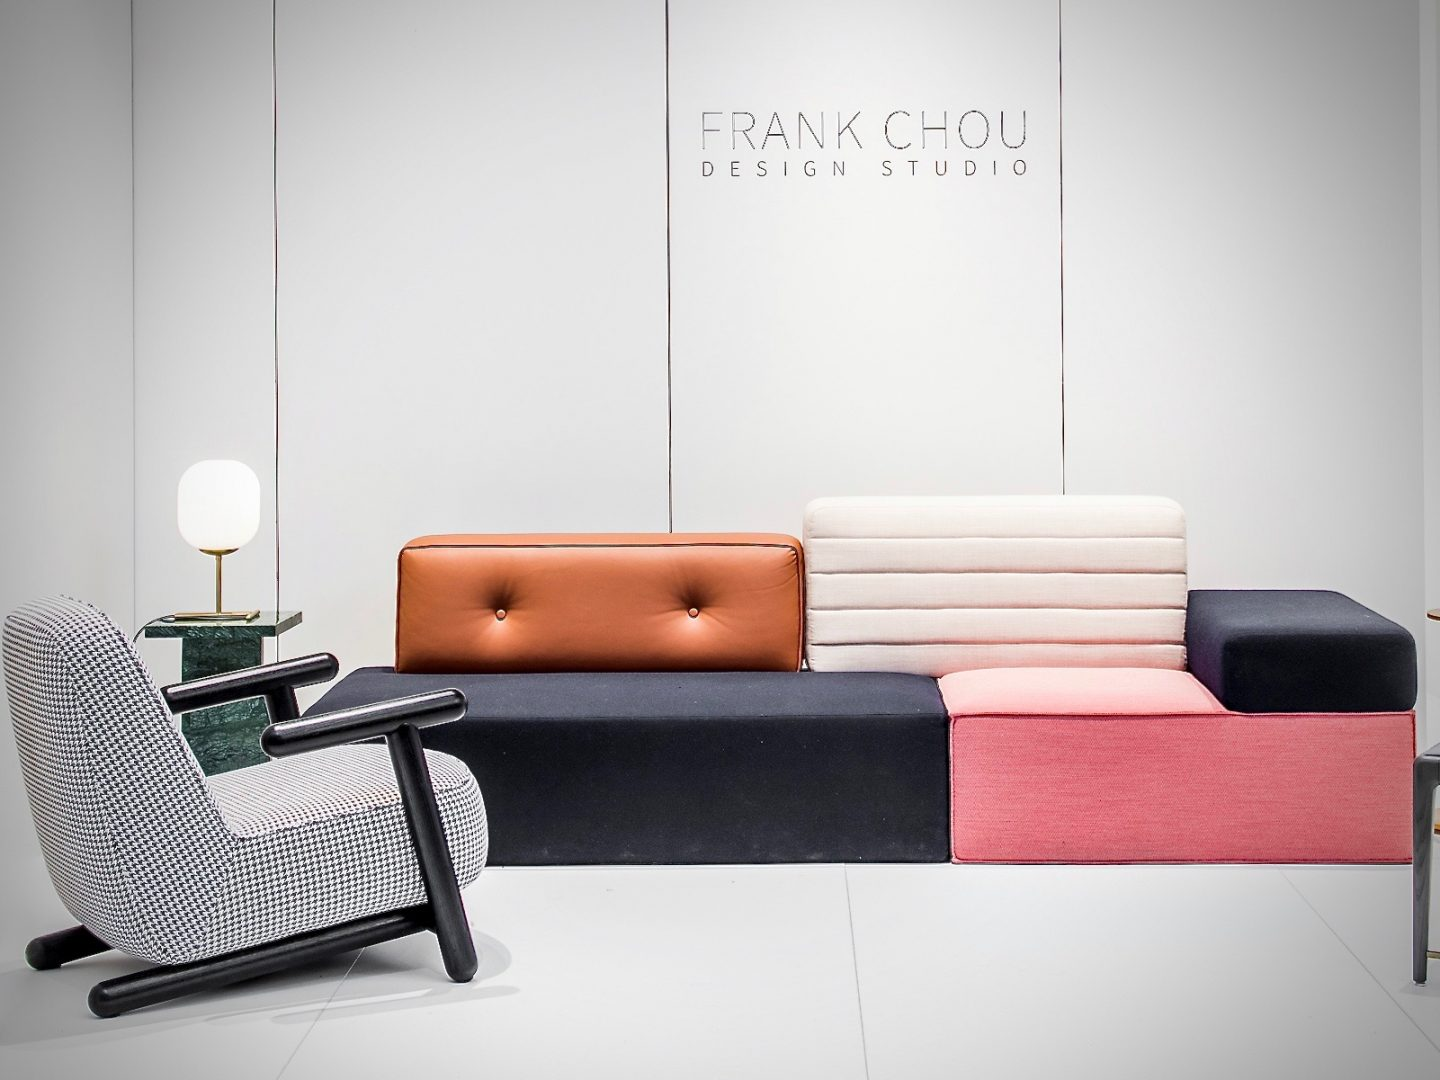 colour and form from Maison & Objet, The Rising Talents, Frank Chou, Hello Peagreen